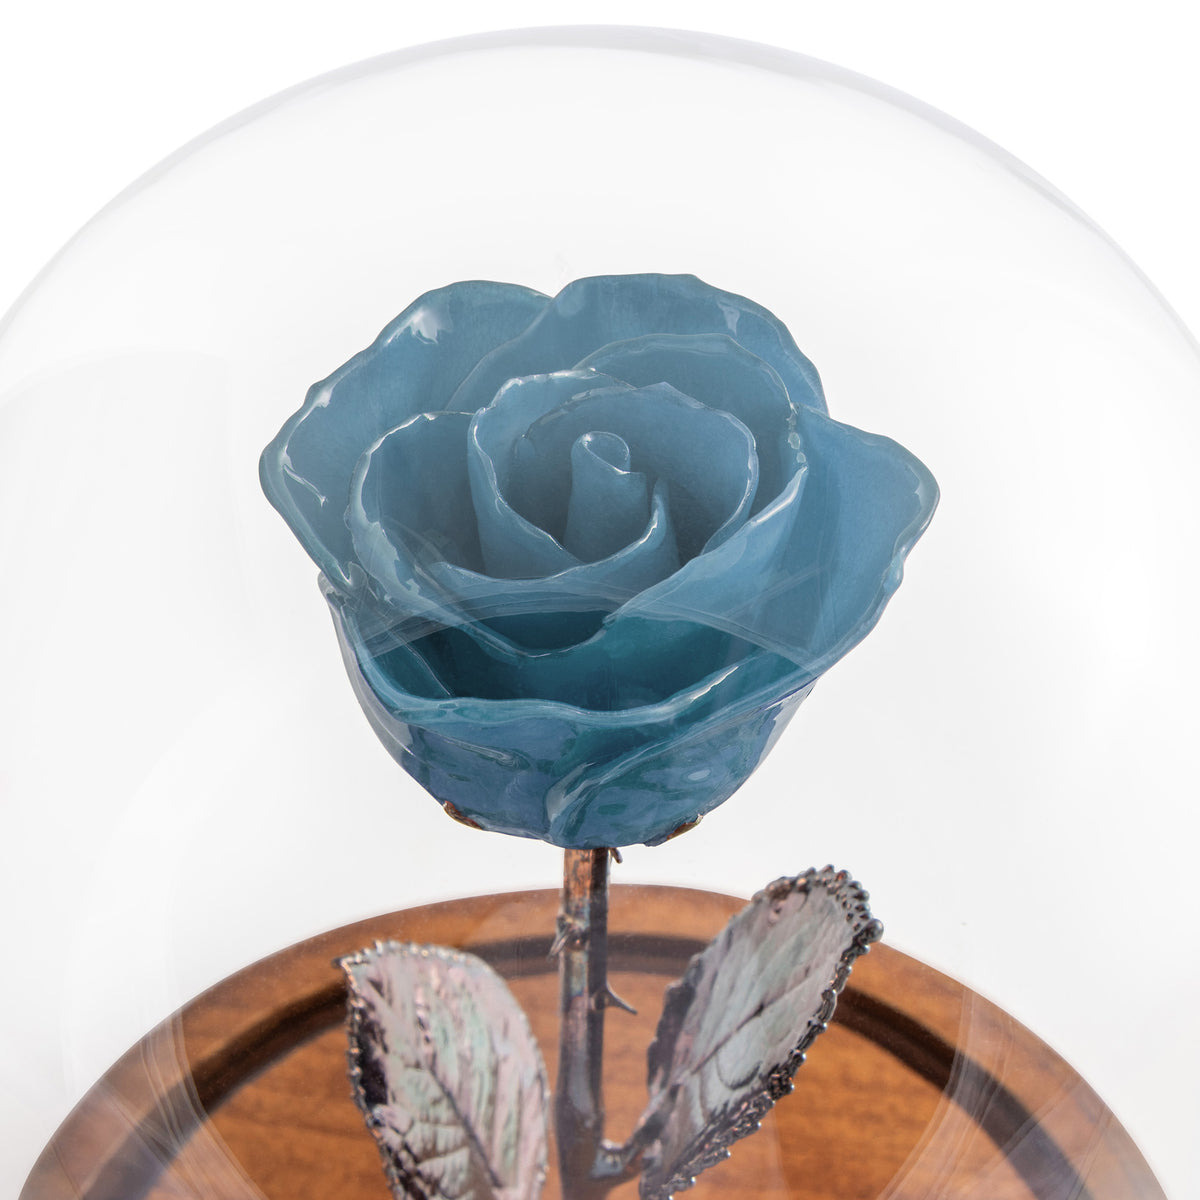 Blue Enchanted Rose (aka Beauty & The Beast Rose) with Patina Copper Stem Mounted to A Hand Turned Solid Wood Base under a glass dome. Close up of flower.